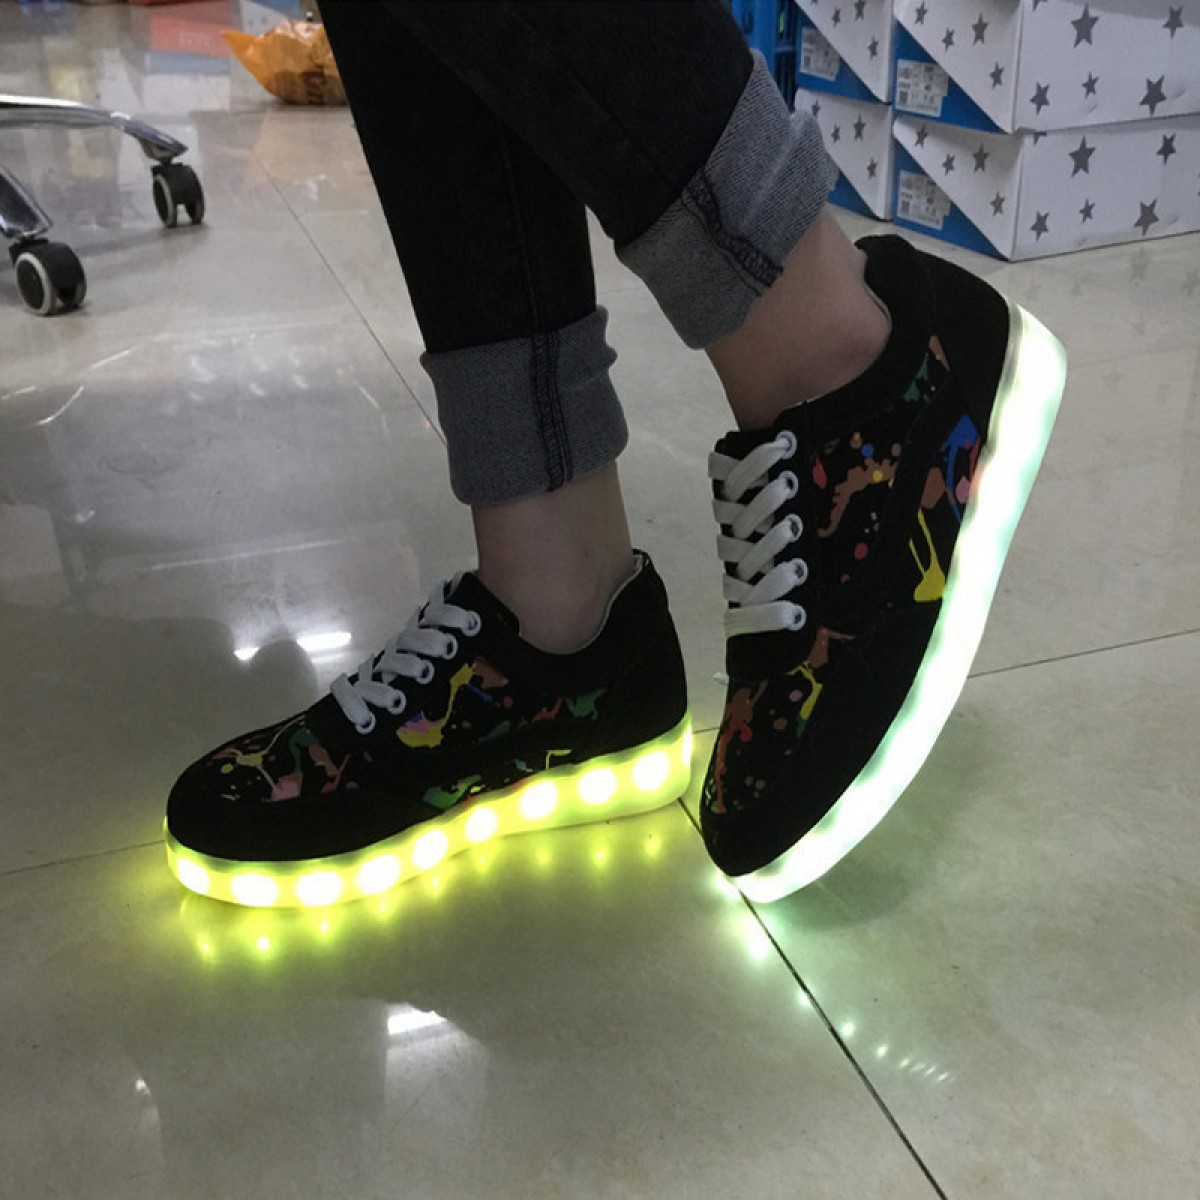 Buy Black Graffiti Pattern Adult Light Up Shoes Lighting Sneakers USB Charging Women Shoes under $69.99 only ... & Black Graffiti Pattern Adult Light Up Shoes Lighting Sneakers USB ... azcodes.com